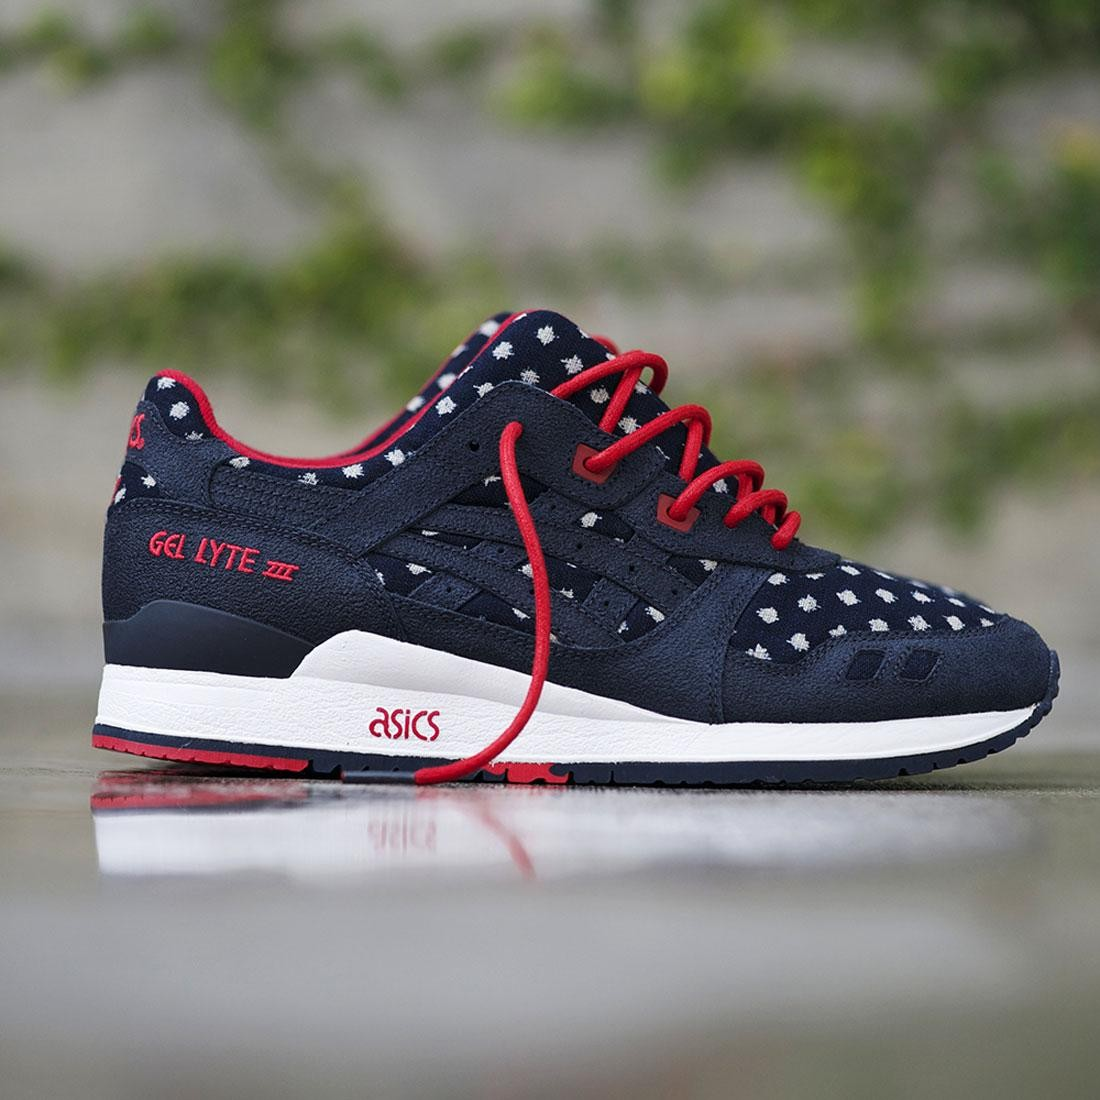 super popular cc01c edac0 BAIT x Asics Tiger Gel-Lyte III Basics Model-003 Nippon Blues